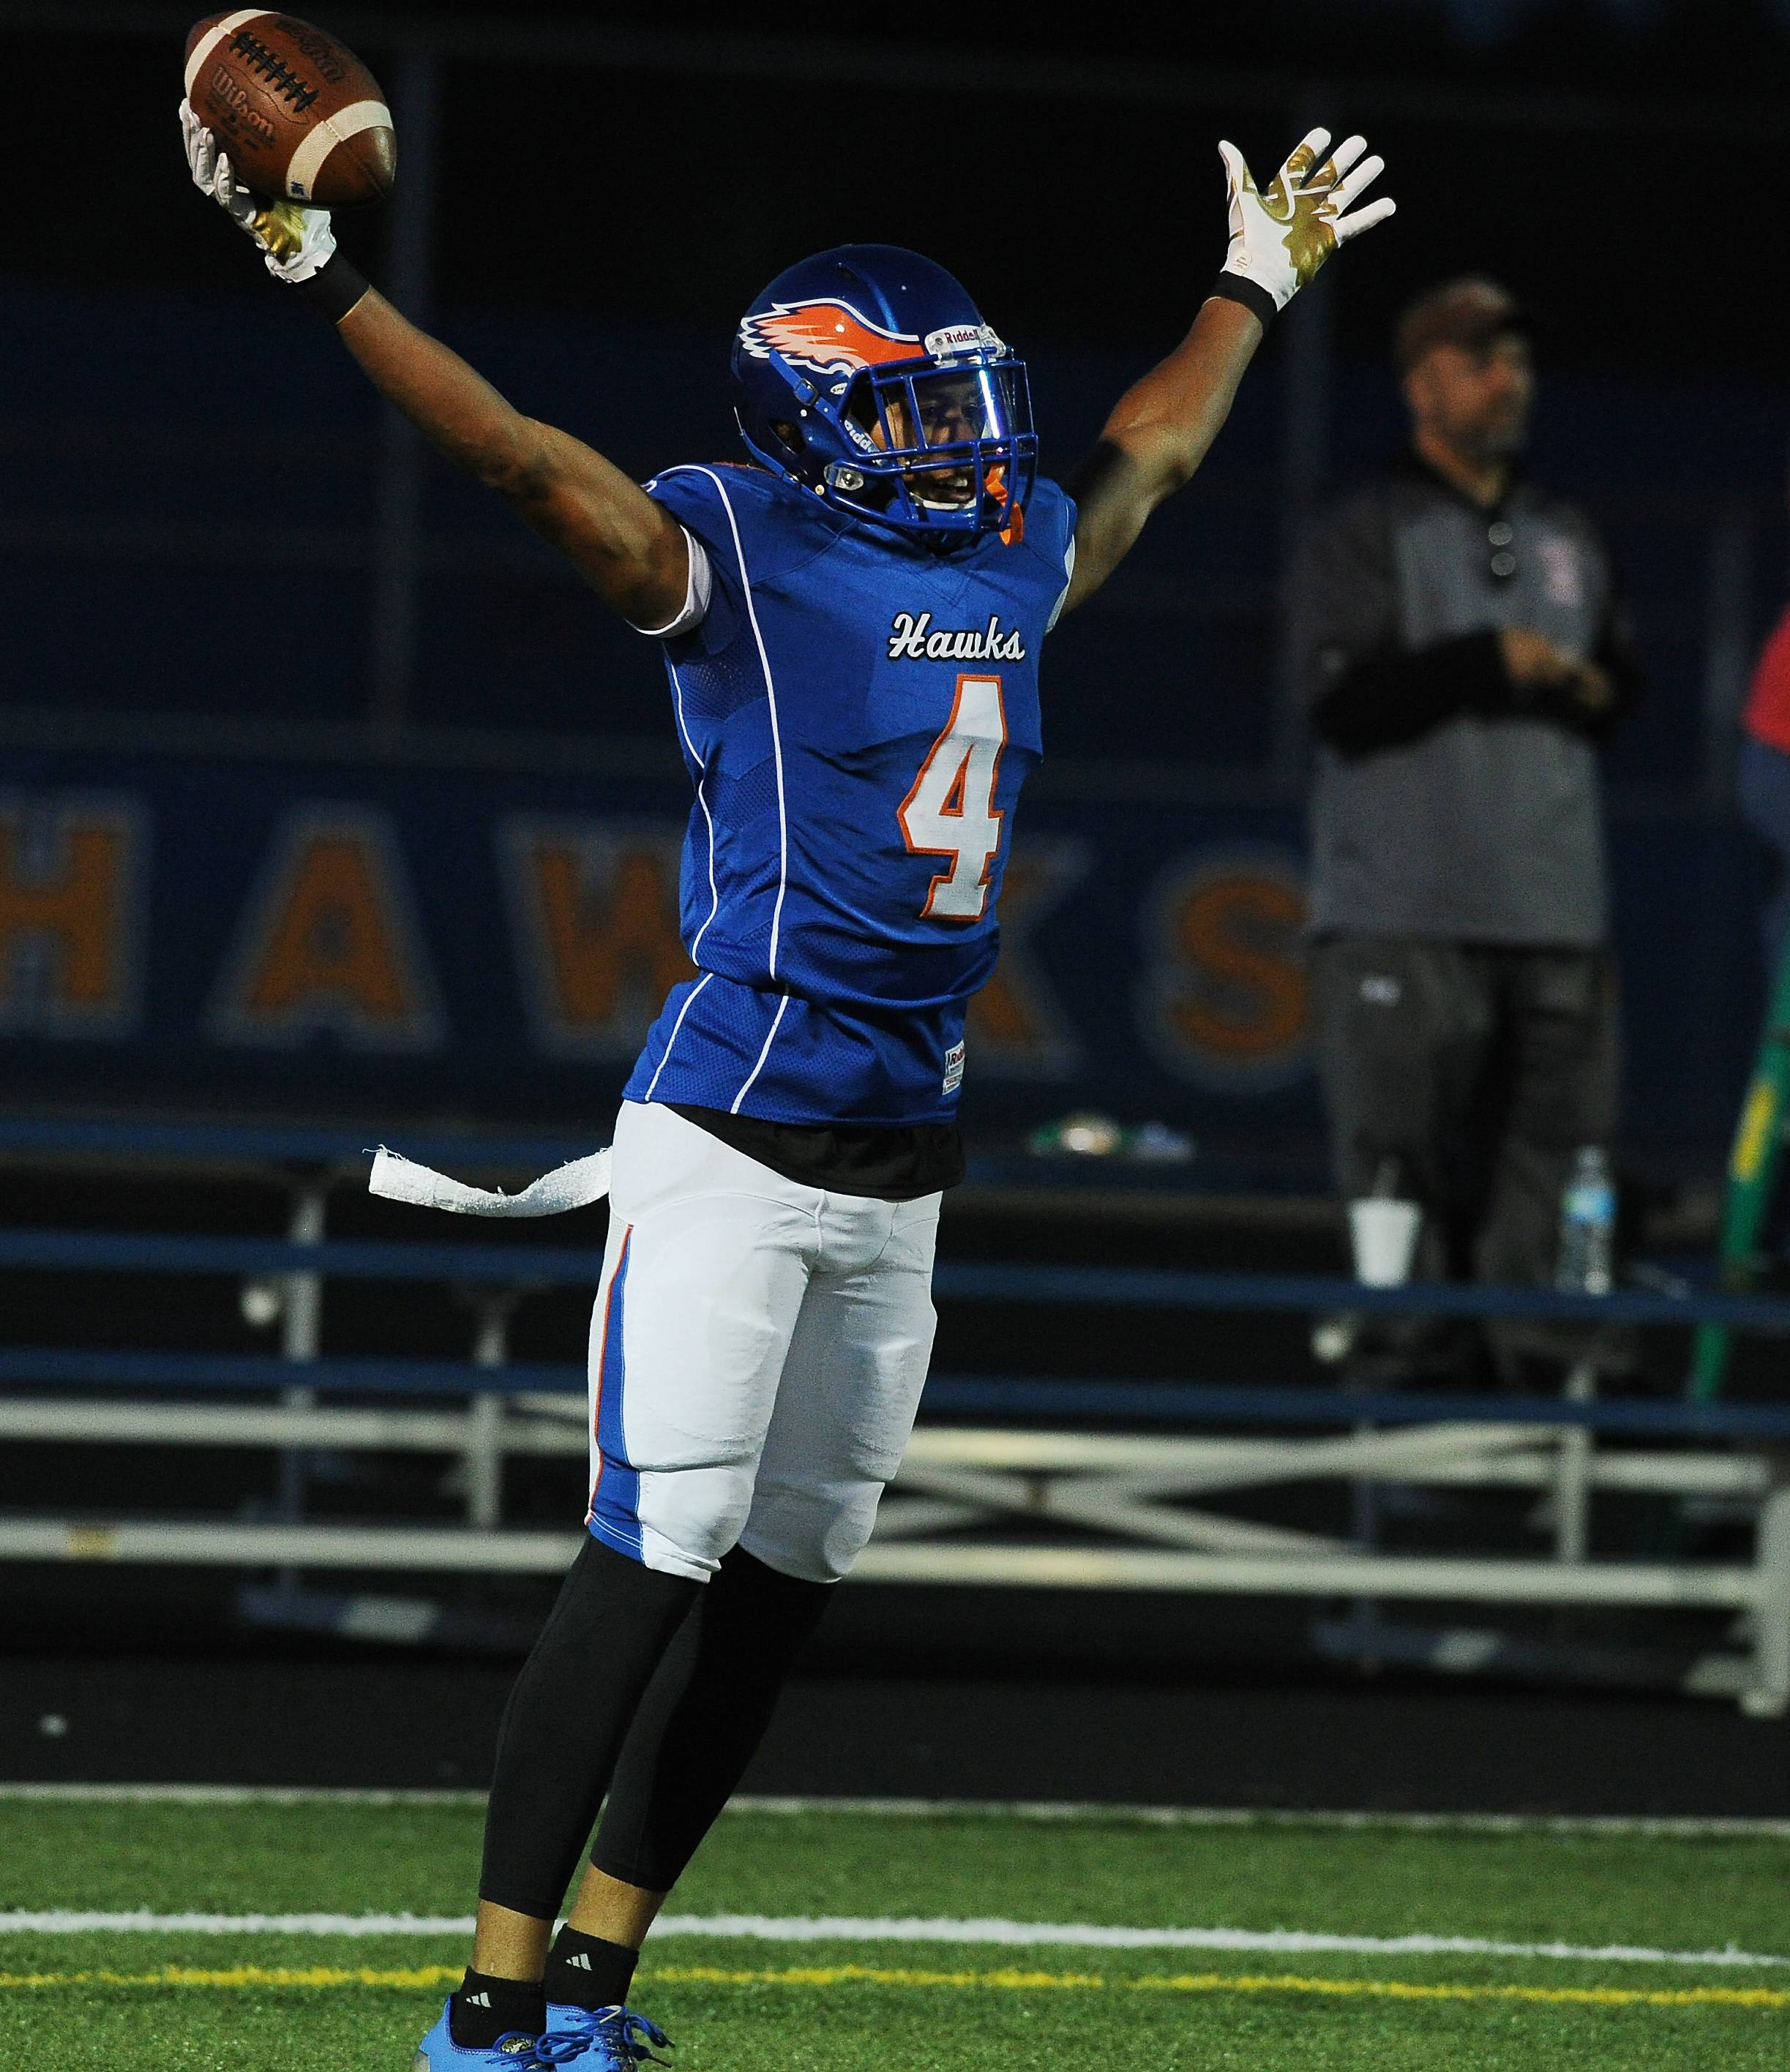 Hoffman Estates continues to catch on, stops Hersey